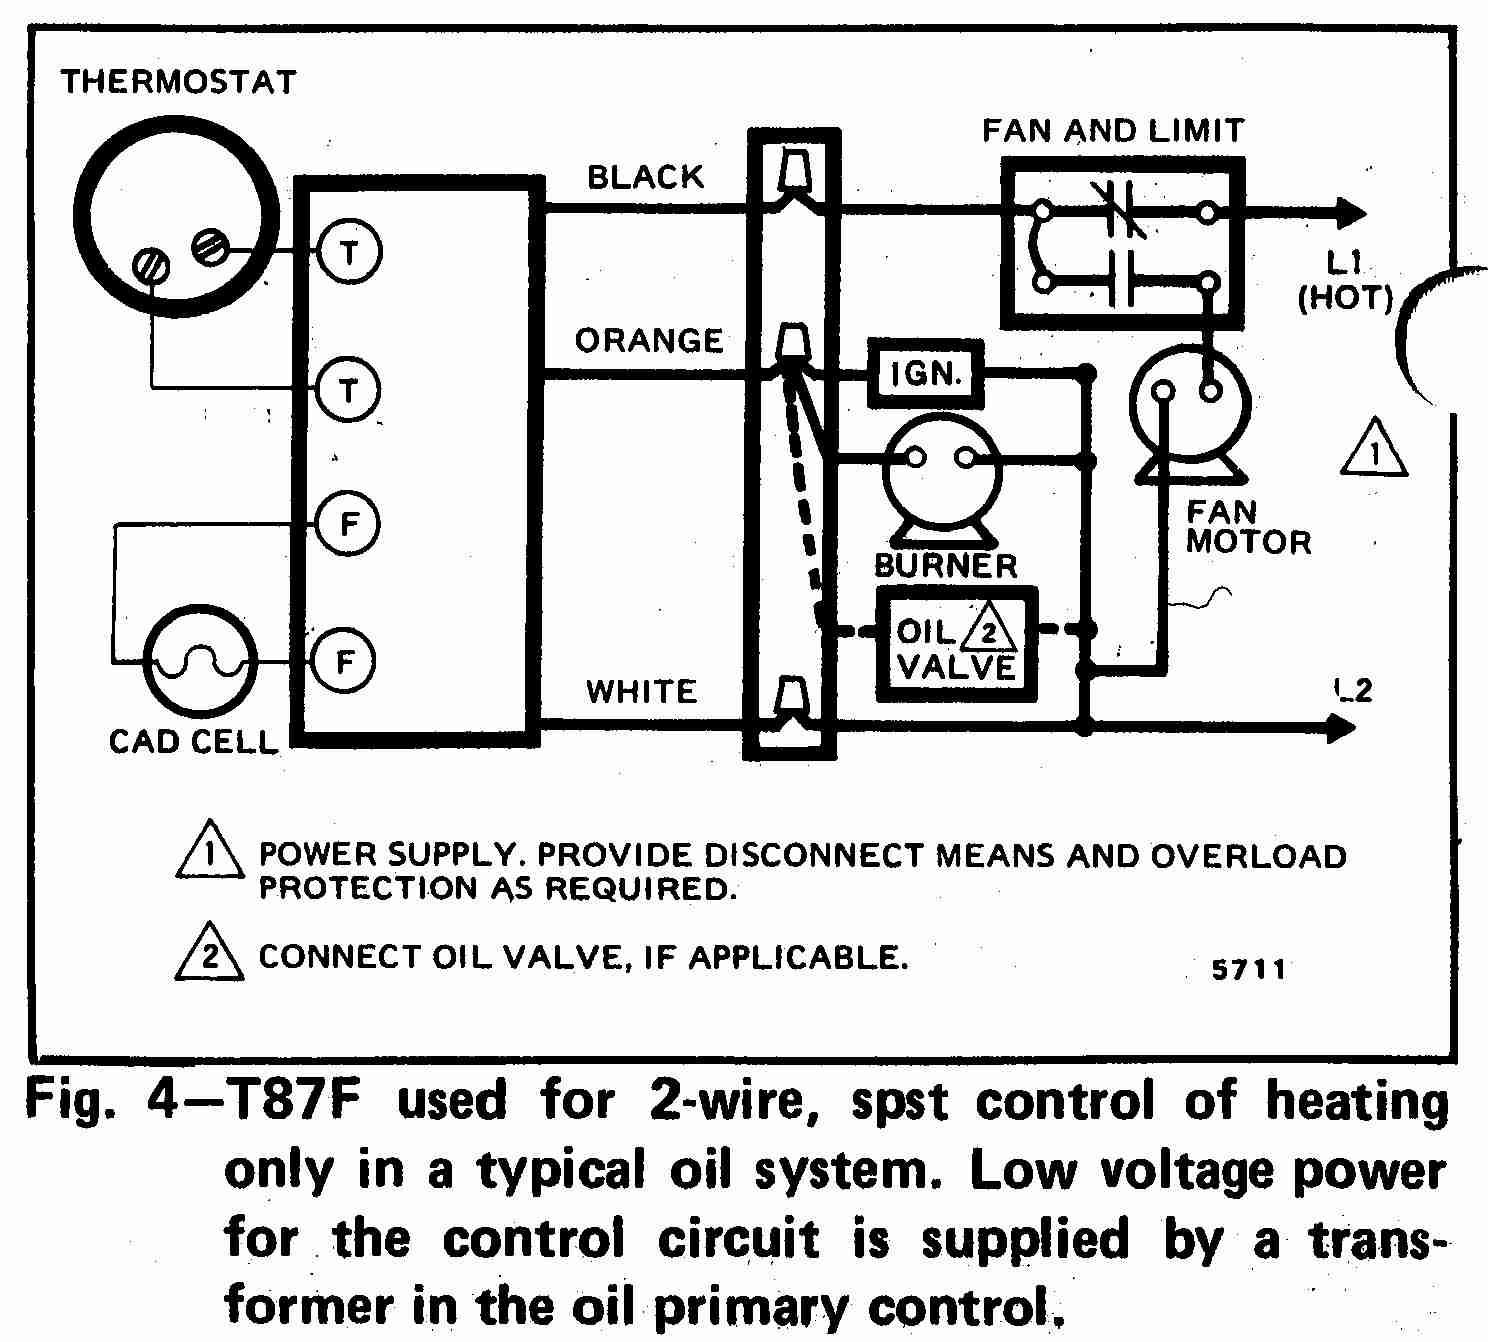 hight resolution of room thermostat wiring diagrams for hvac systems wiring diagram also wood fired water heater on gas furnace wiring